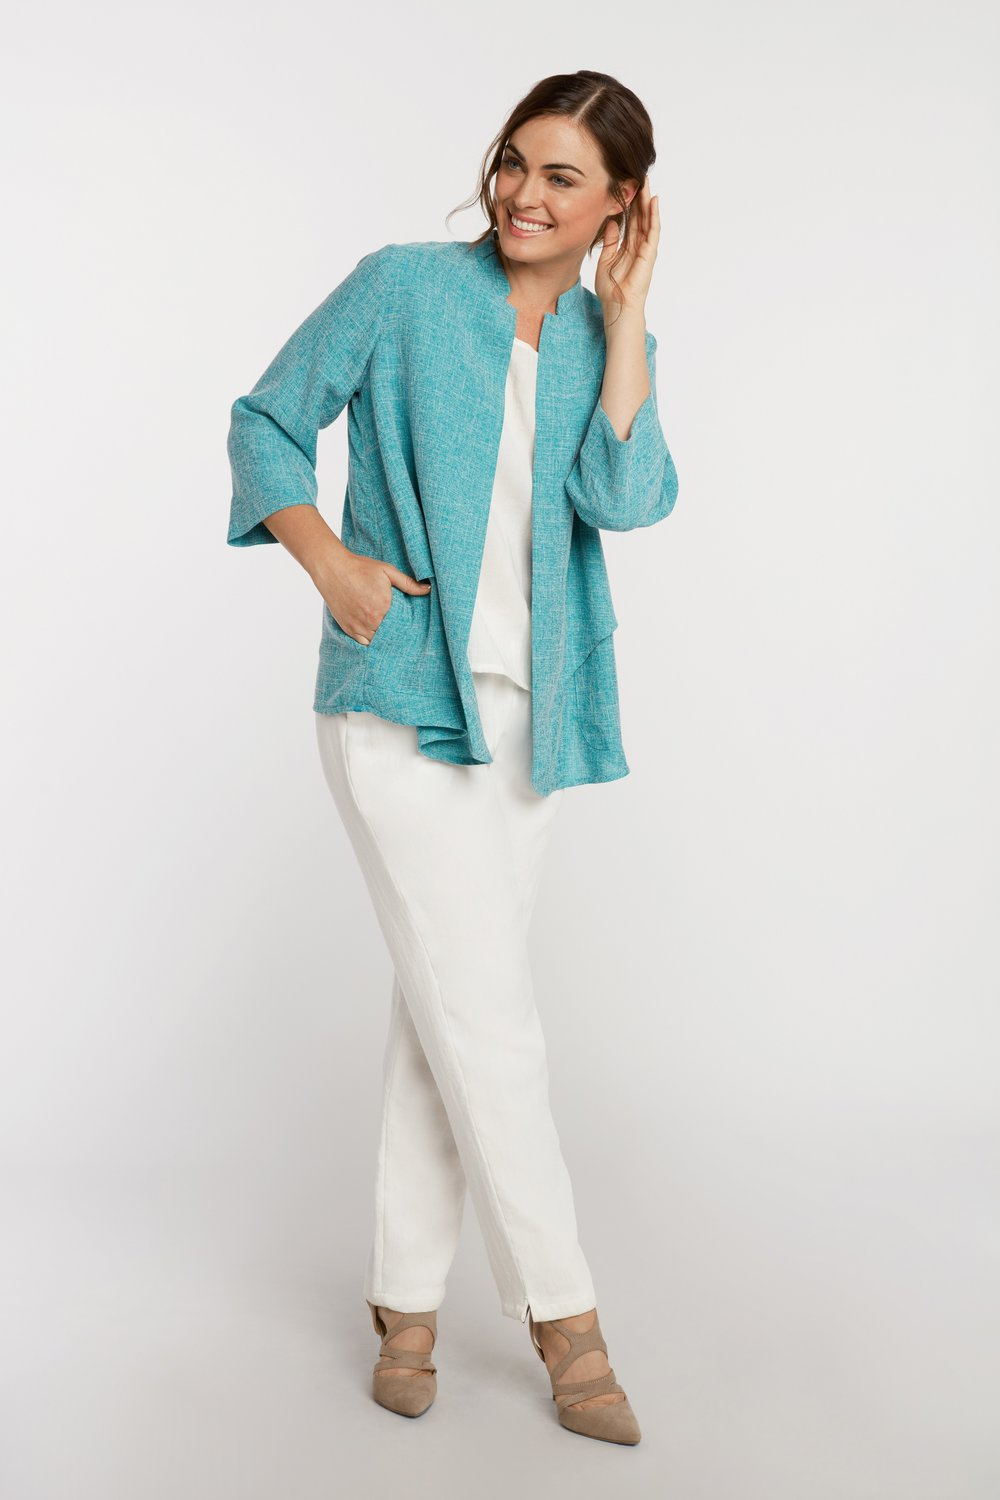 0642b17f932 AA7137 - Waterfall Jacket — Fridaze - The Original Wrinkle-Resistant Linen  Collection